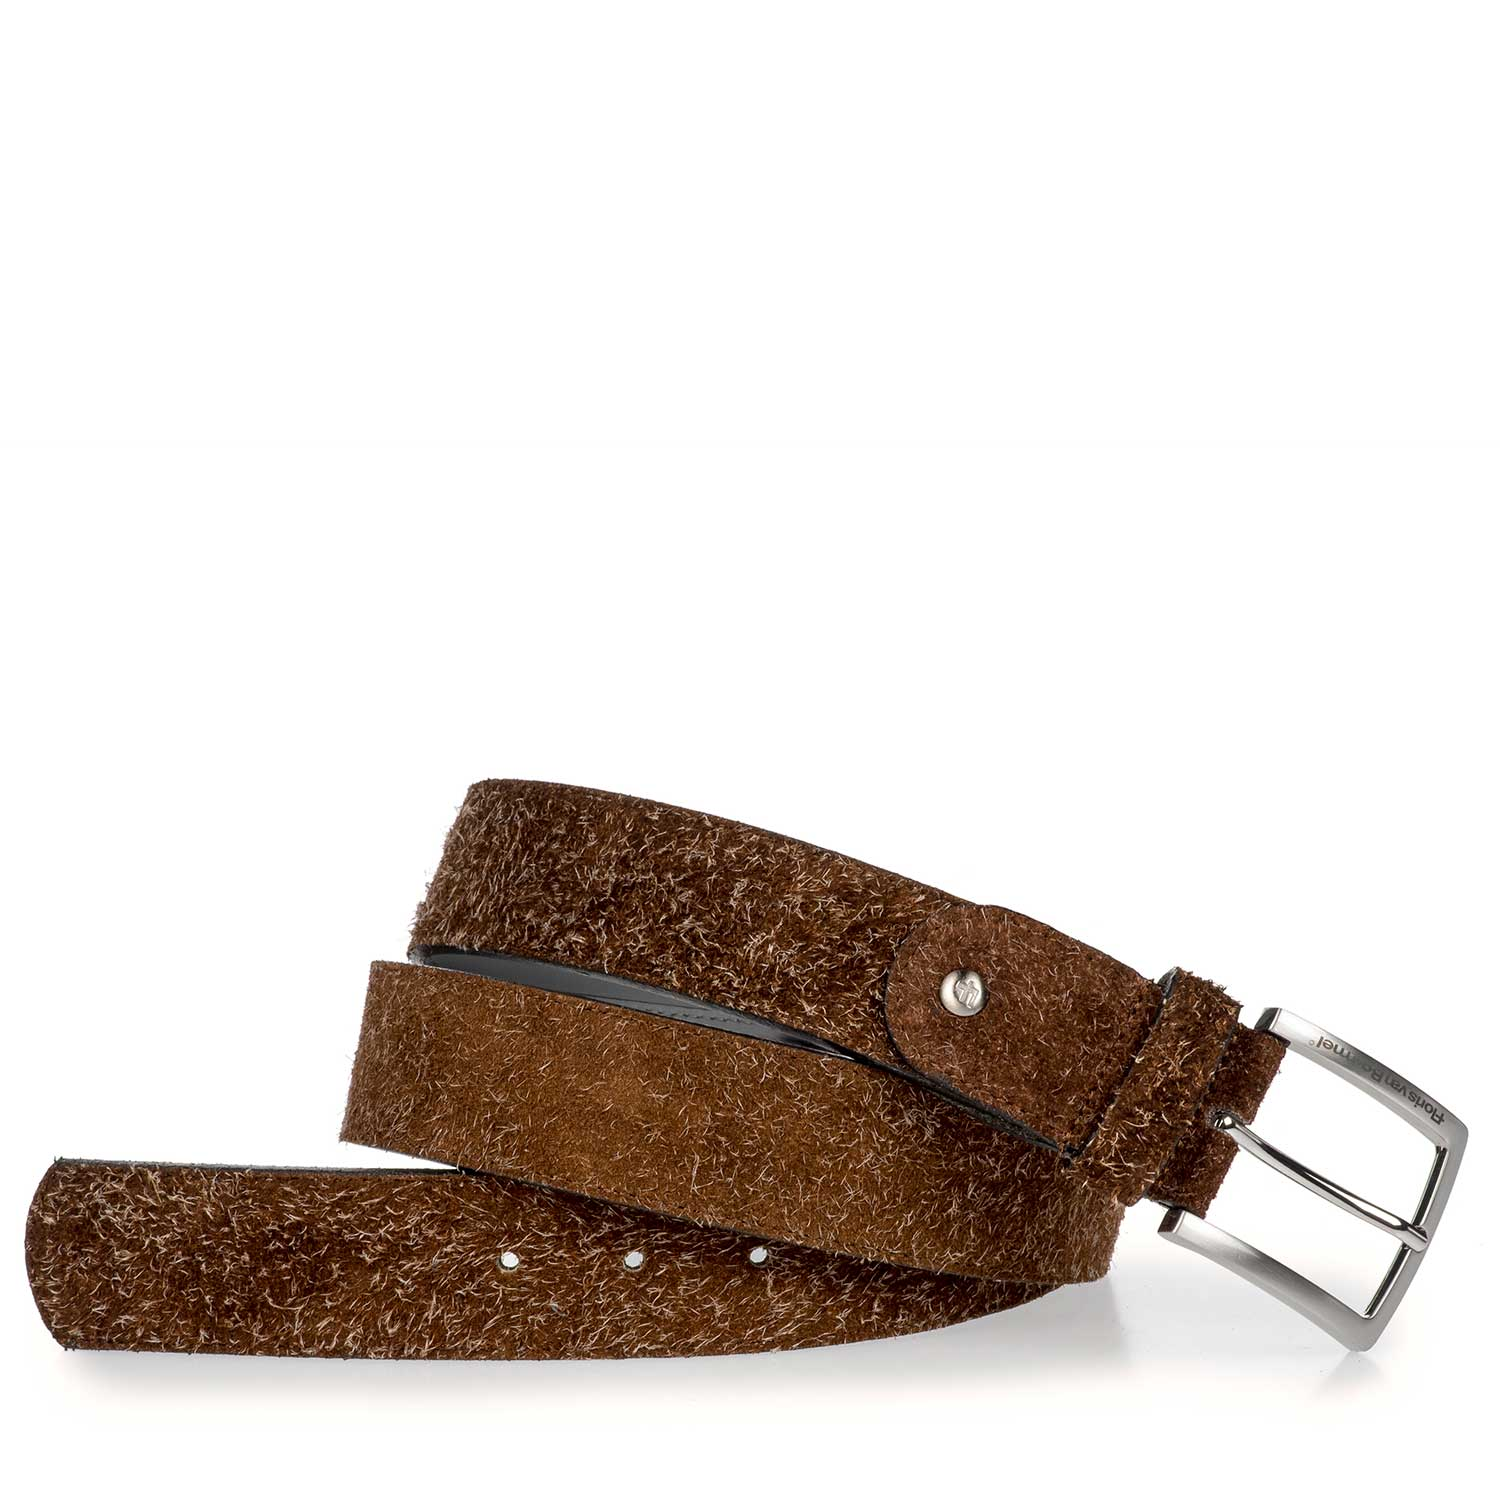 75191/02 - Brown rough suede leather belt